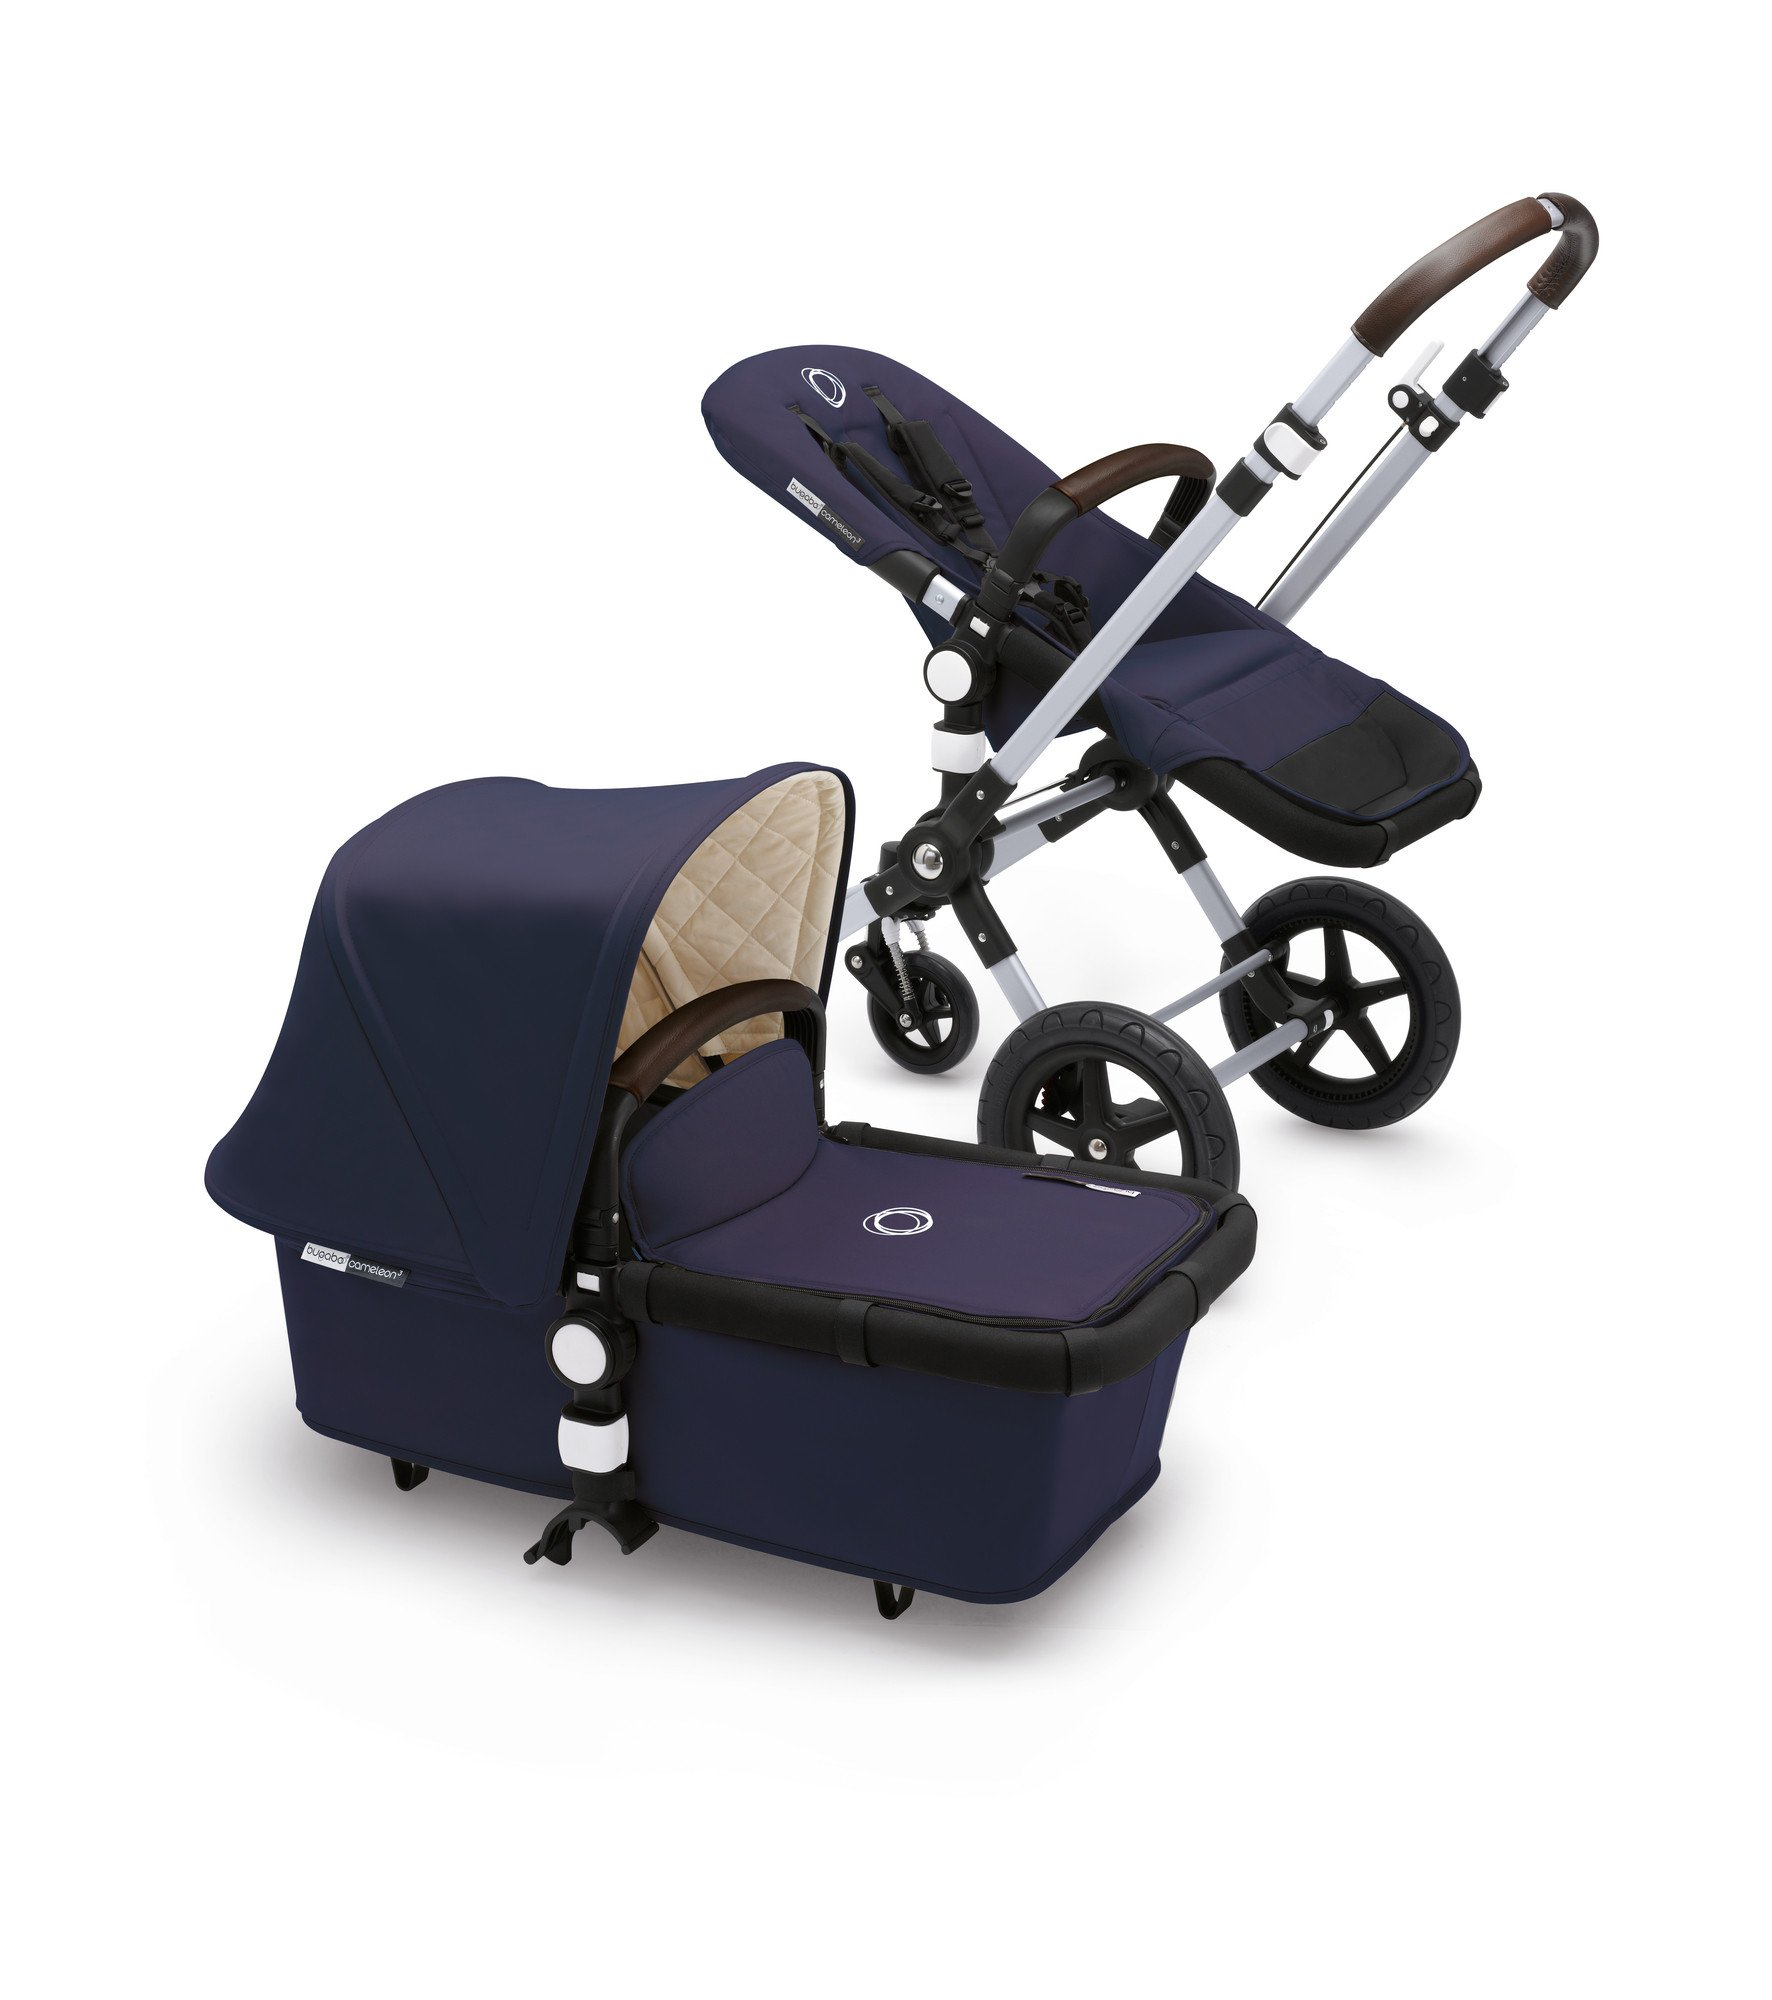 Bugaboo cameleon 3 classic + complete Bugaboo stroller